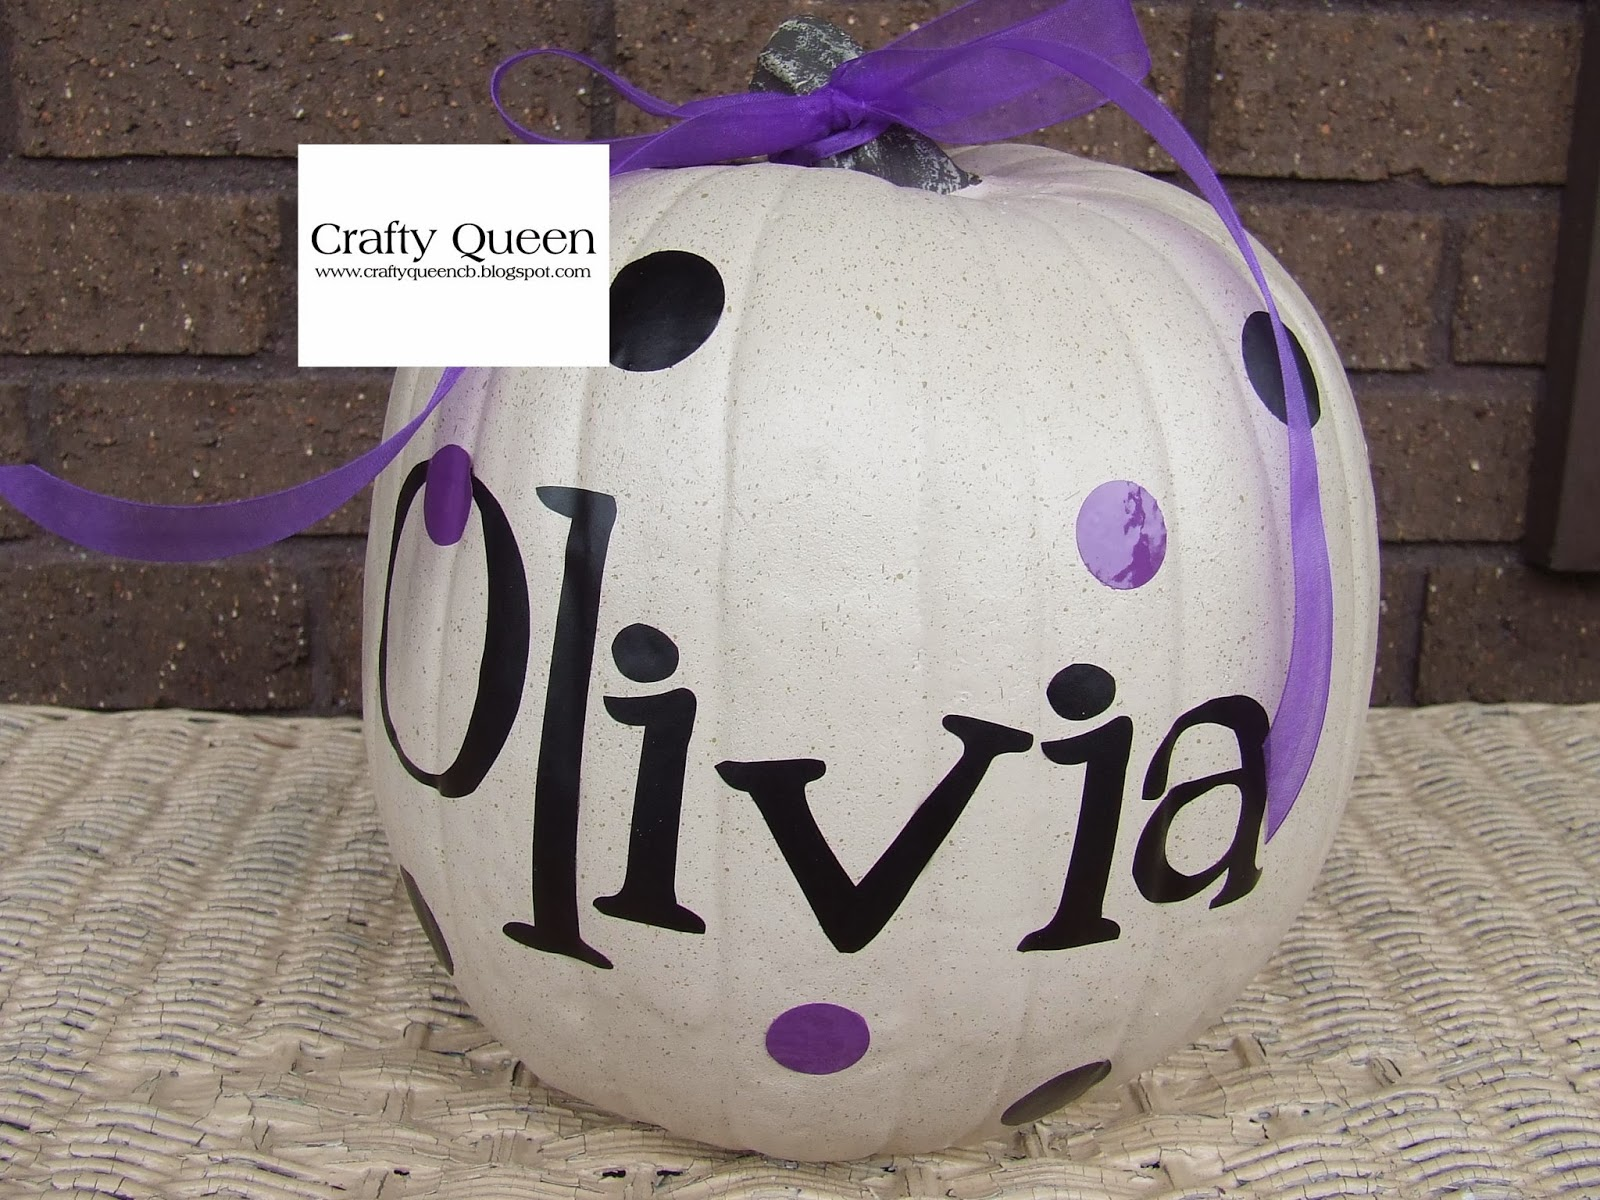 Crafty Queen CB